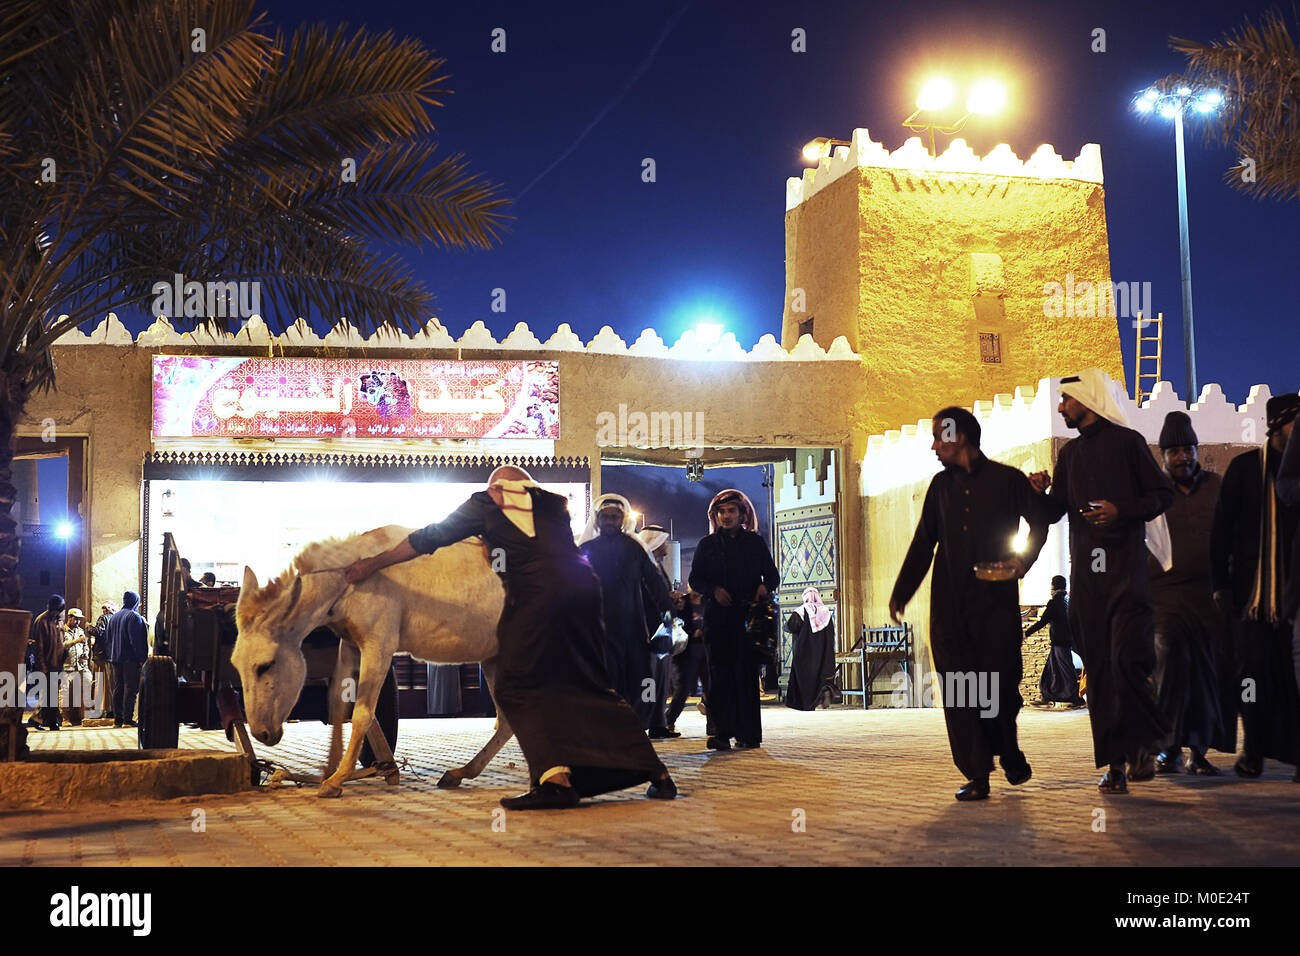 A man pushes a donkey fowrard while crowd watches him at  the Al Janadriyadh Festival ground in KSA - Stock Image